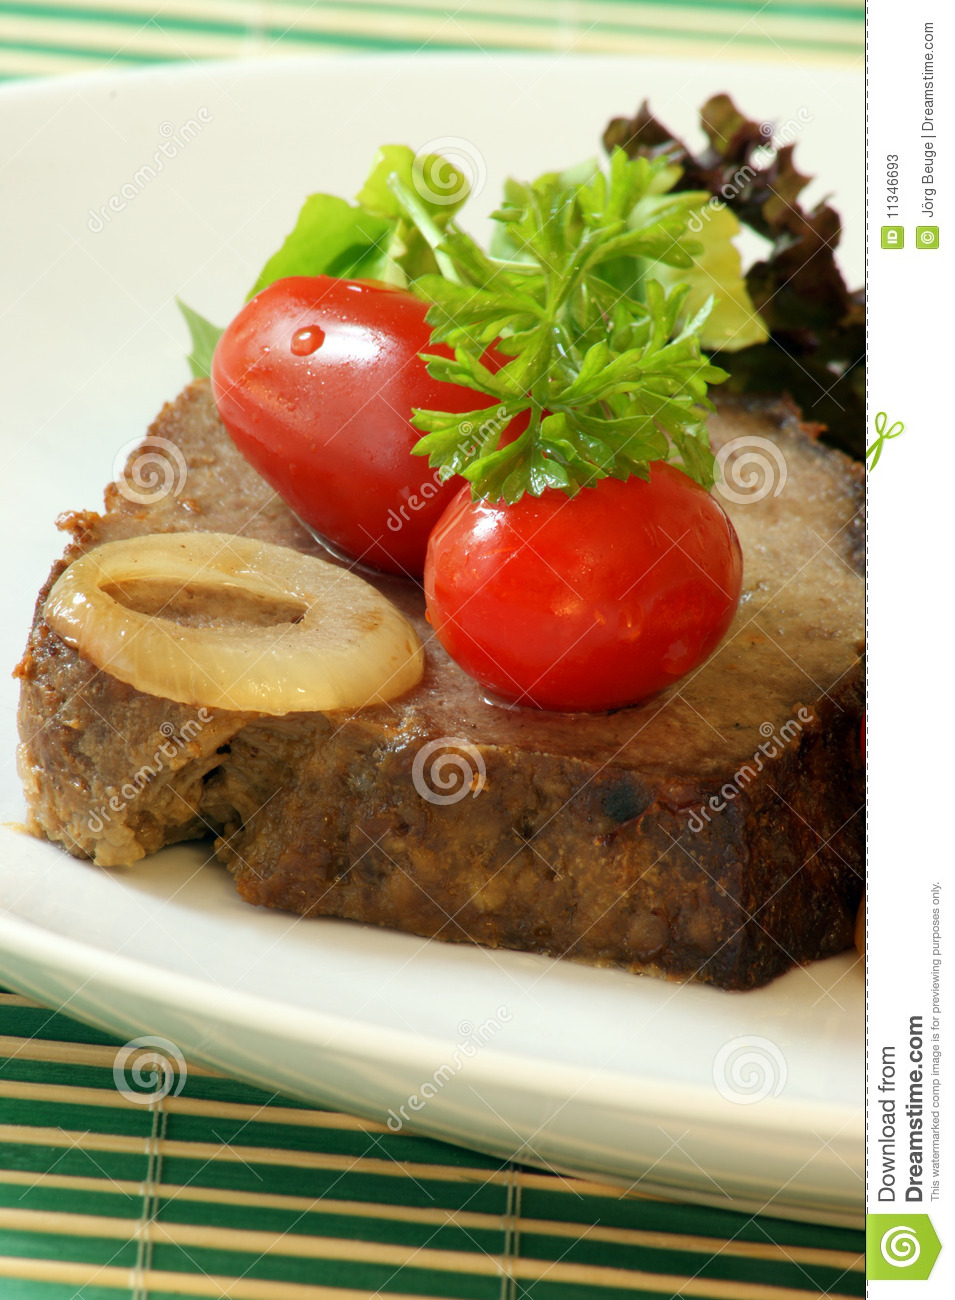 Similar Stock Images Of   Sliced Meat Loaf With Parsley On A Plate